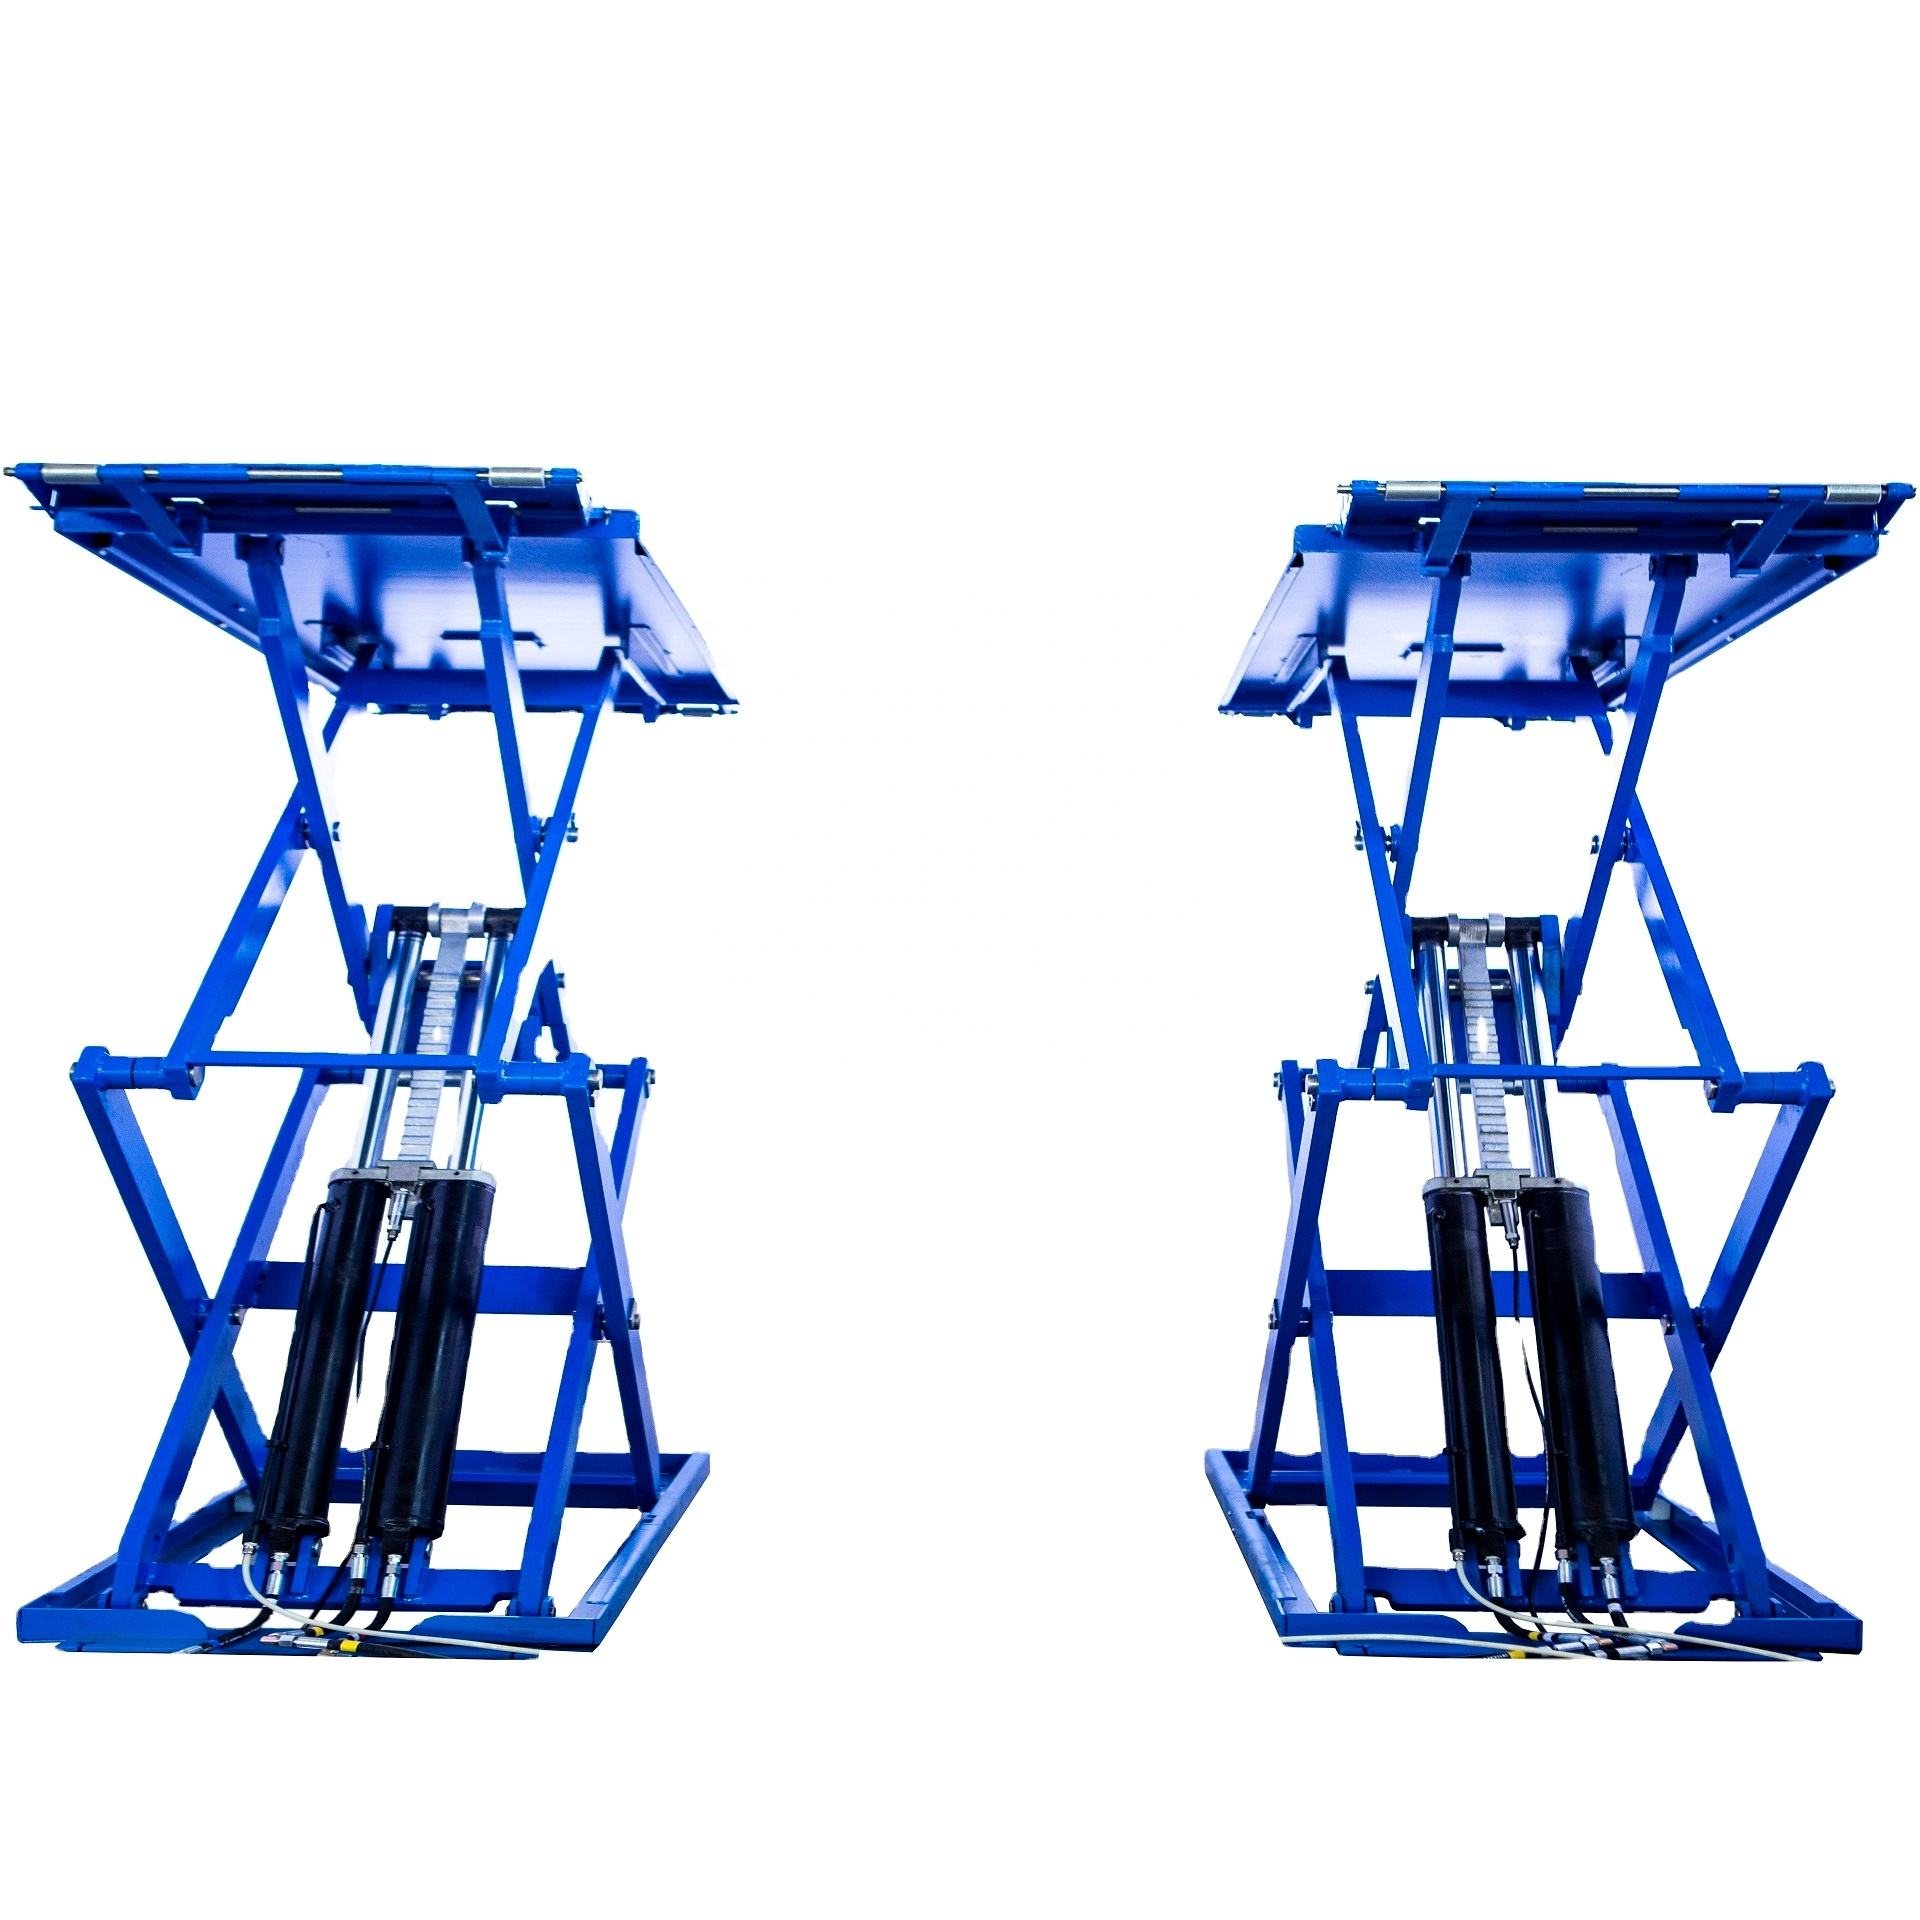 Ultra Super Thin Small Platform Scissor Car Lifts For Sale